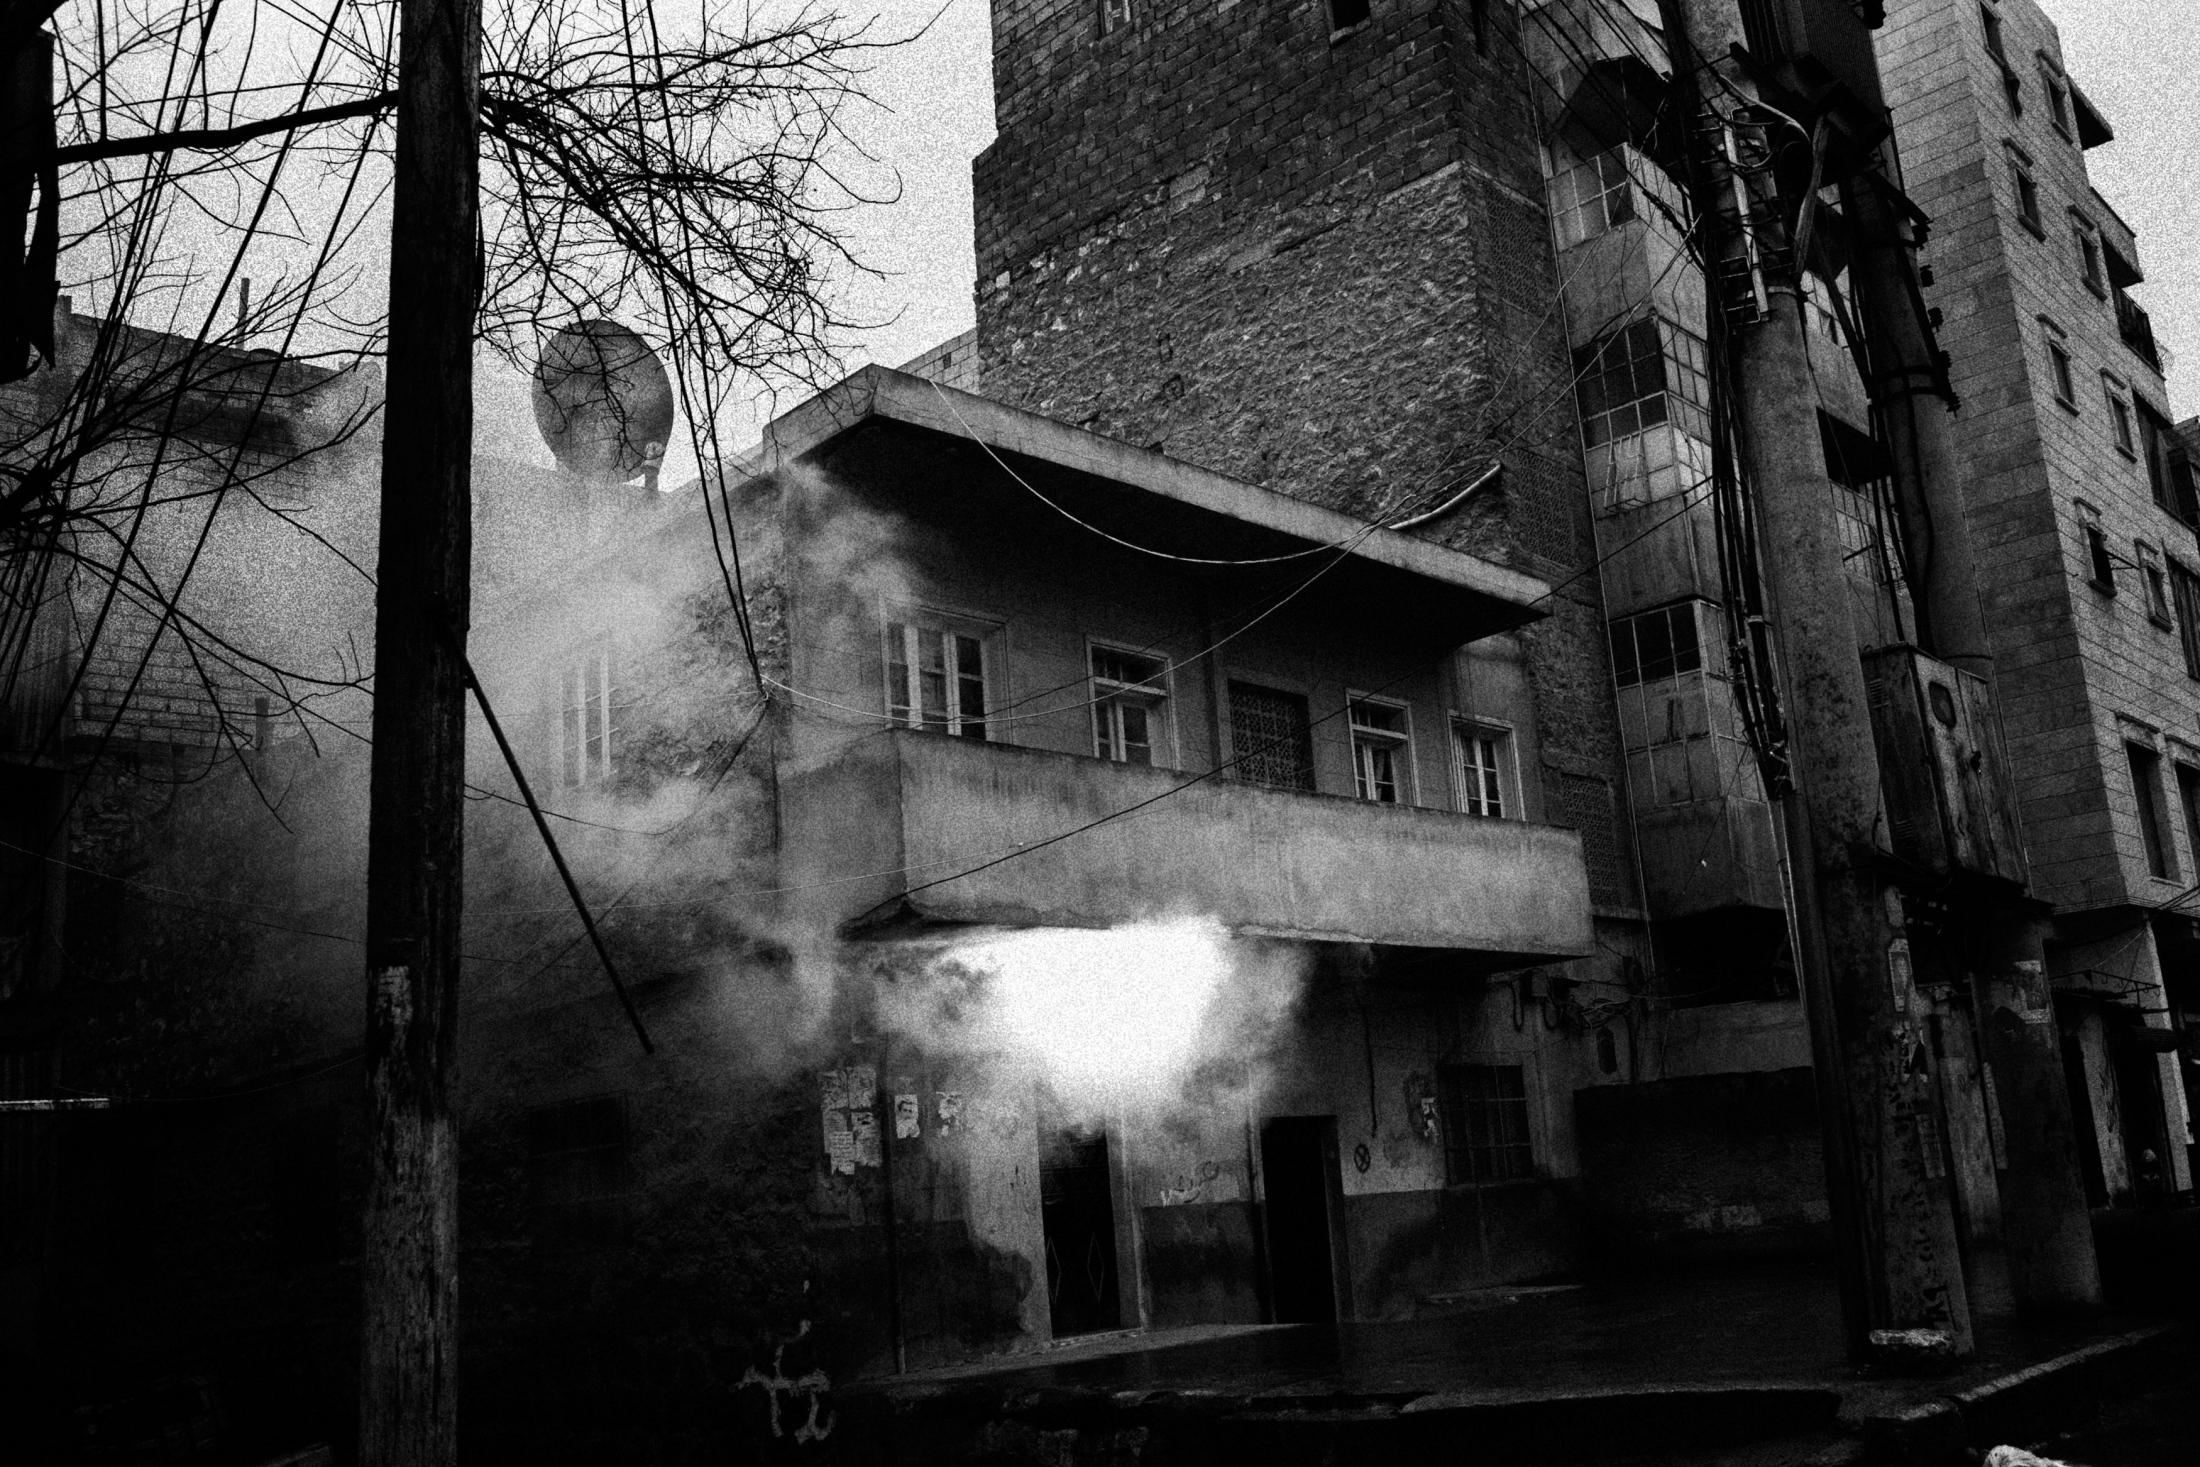 """A fire started after a bullet impact in a house plenty of gas tanks to cook in the neighborhood of Izaah of Aleppo, Syria, Wednesday, Jan. 5, 2013. The United Nations estimated that more than 400,000 people have been killed in Syria's 60-month-old uprising against authoritarian rule, a toll one-third higher than what anti-regime activists had counted. The U.N. human rights chief called the toll """"truly shocking."""" Copyright: Spanish Photojournalist Andoni Lubaki"""